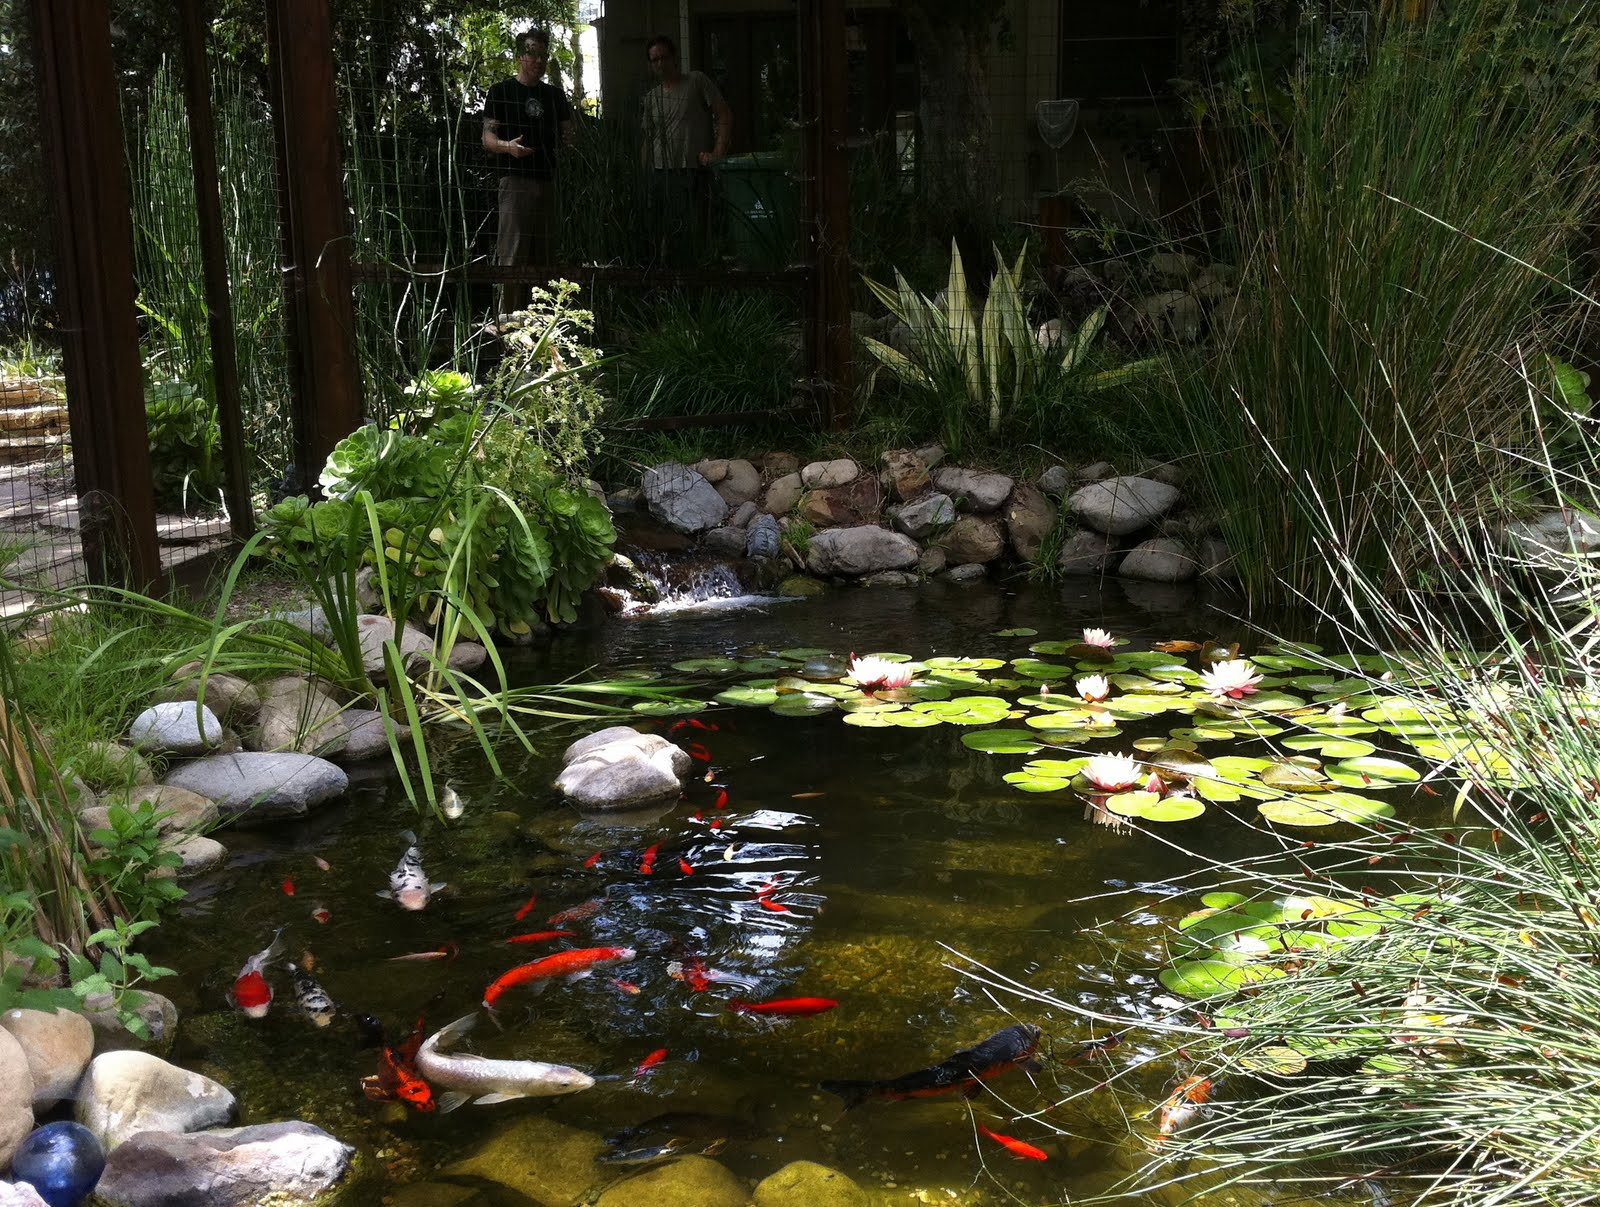 Elgin eco house garden serenity in the midst of the city for What is a koi pond